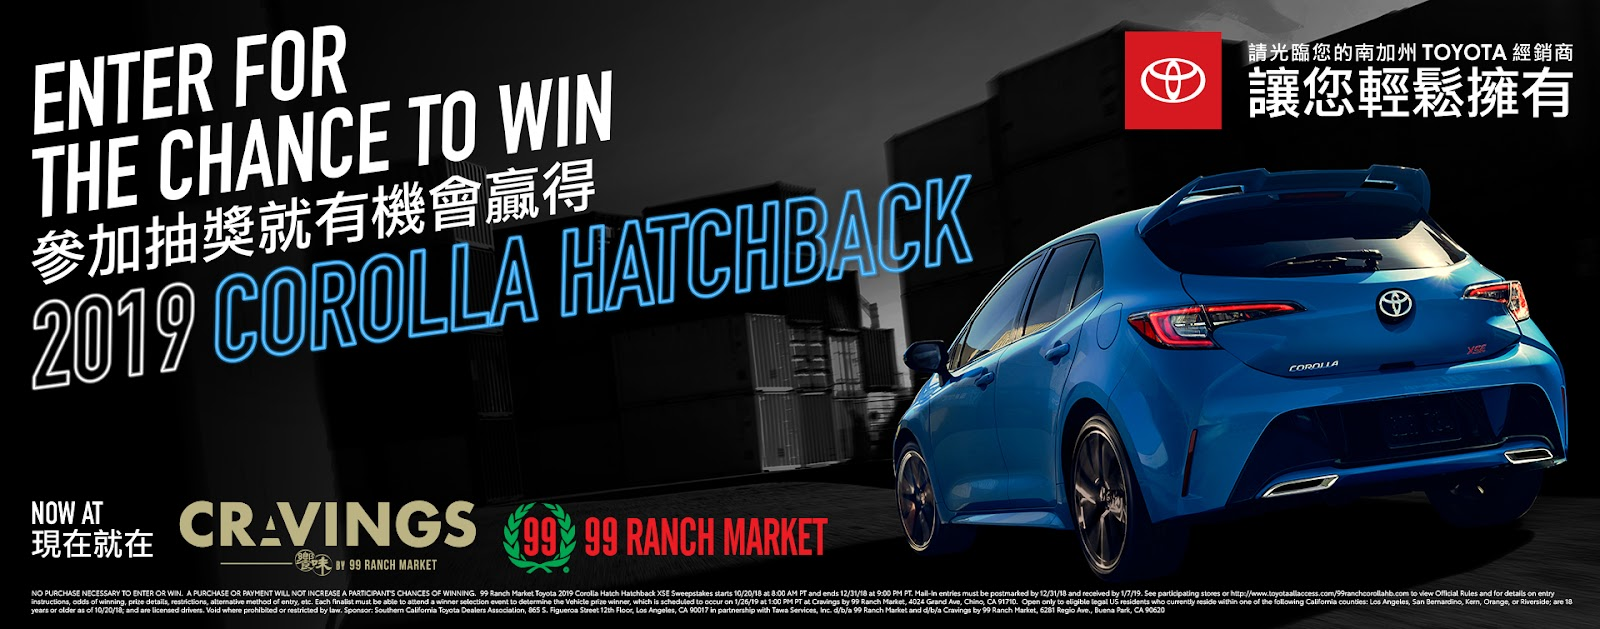 Blog ENTER FOR YOUR CHANCE TO WIN A BRAND NEW 2019 TOYOTA COROLLA